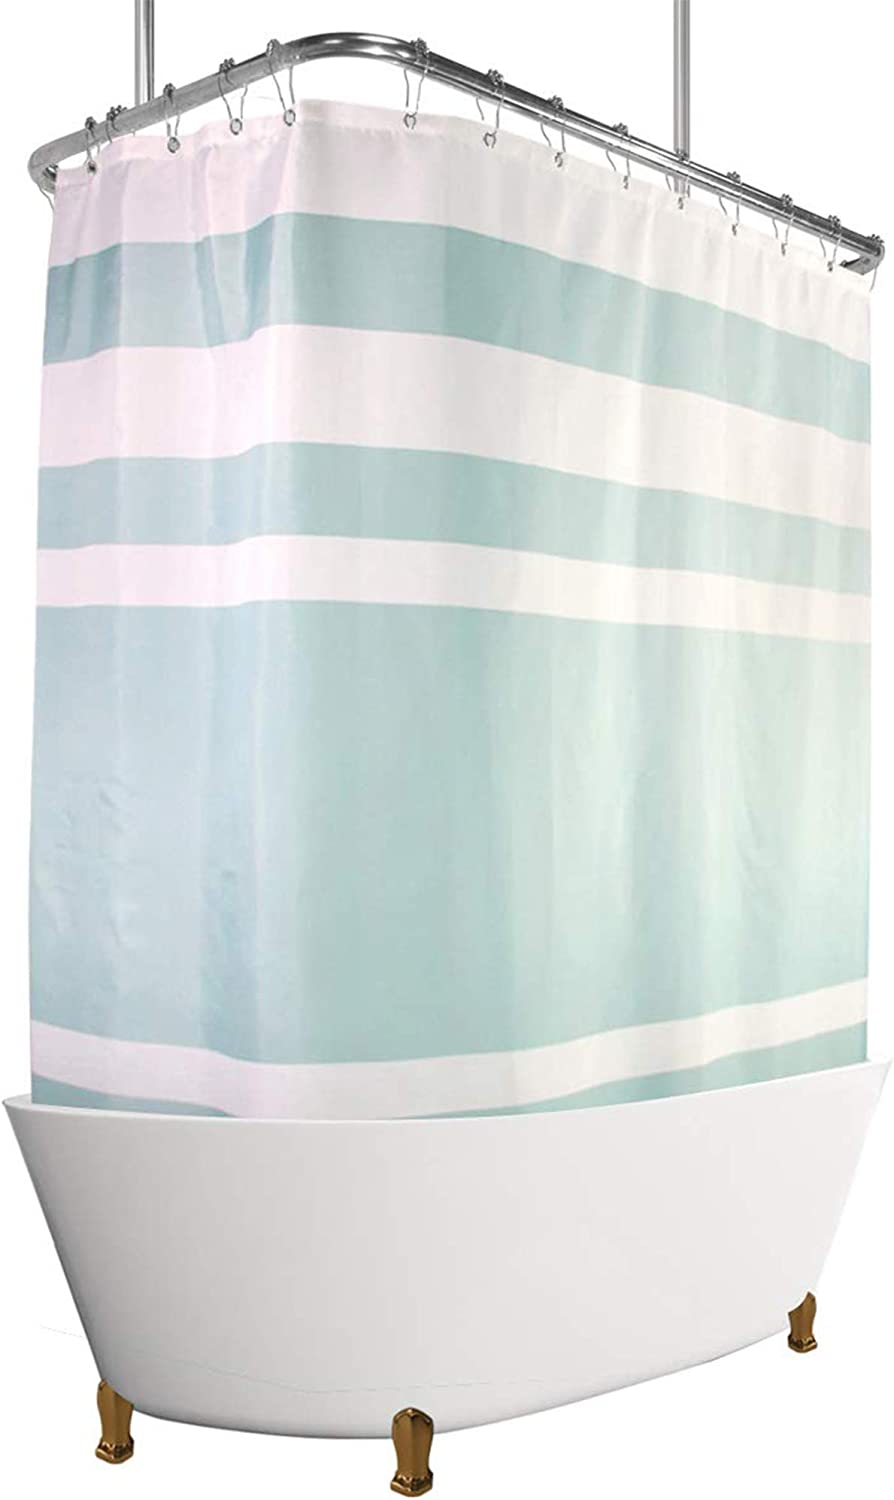 180x180cm Tub Shower Curtain Polyester with Plastic Rings Universal Stick B